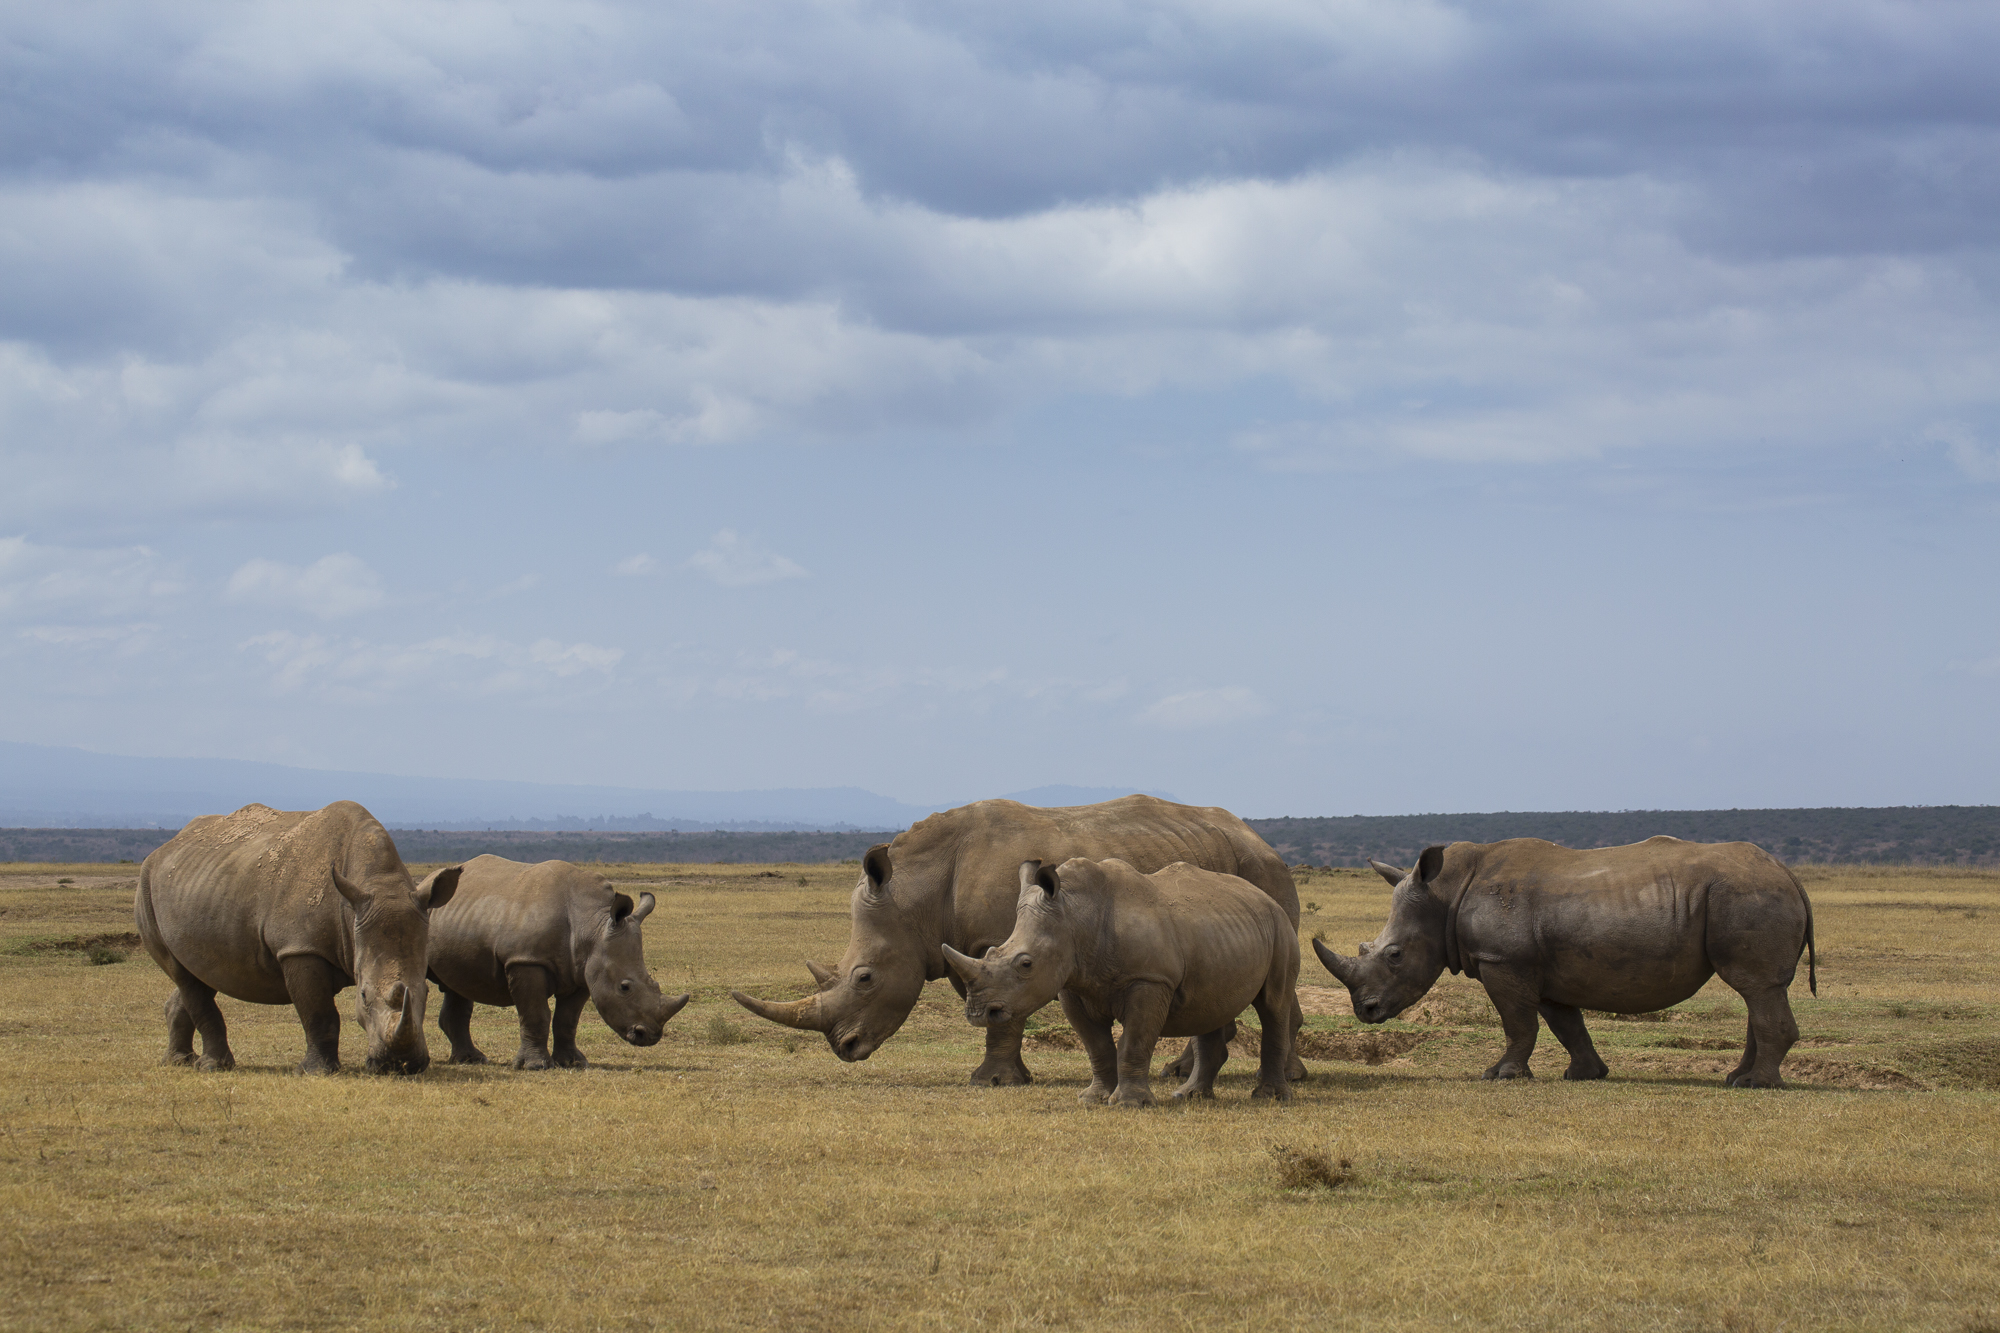 A group of rhinos grazing in Solio Ranch, Kenya. A privately owned game reserve, Solio has been at the forefront of rhino conservation in Kenya for 48 years, having one of the largest rhino populations in East Africa and having exported over 150 rhinos to other sanctuaries and reserves across the continent.